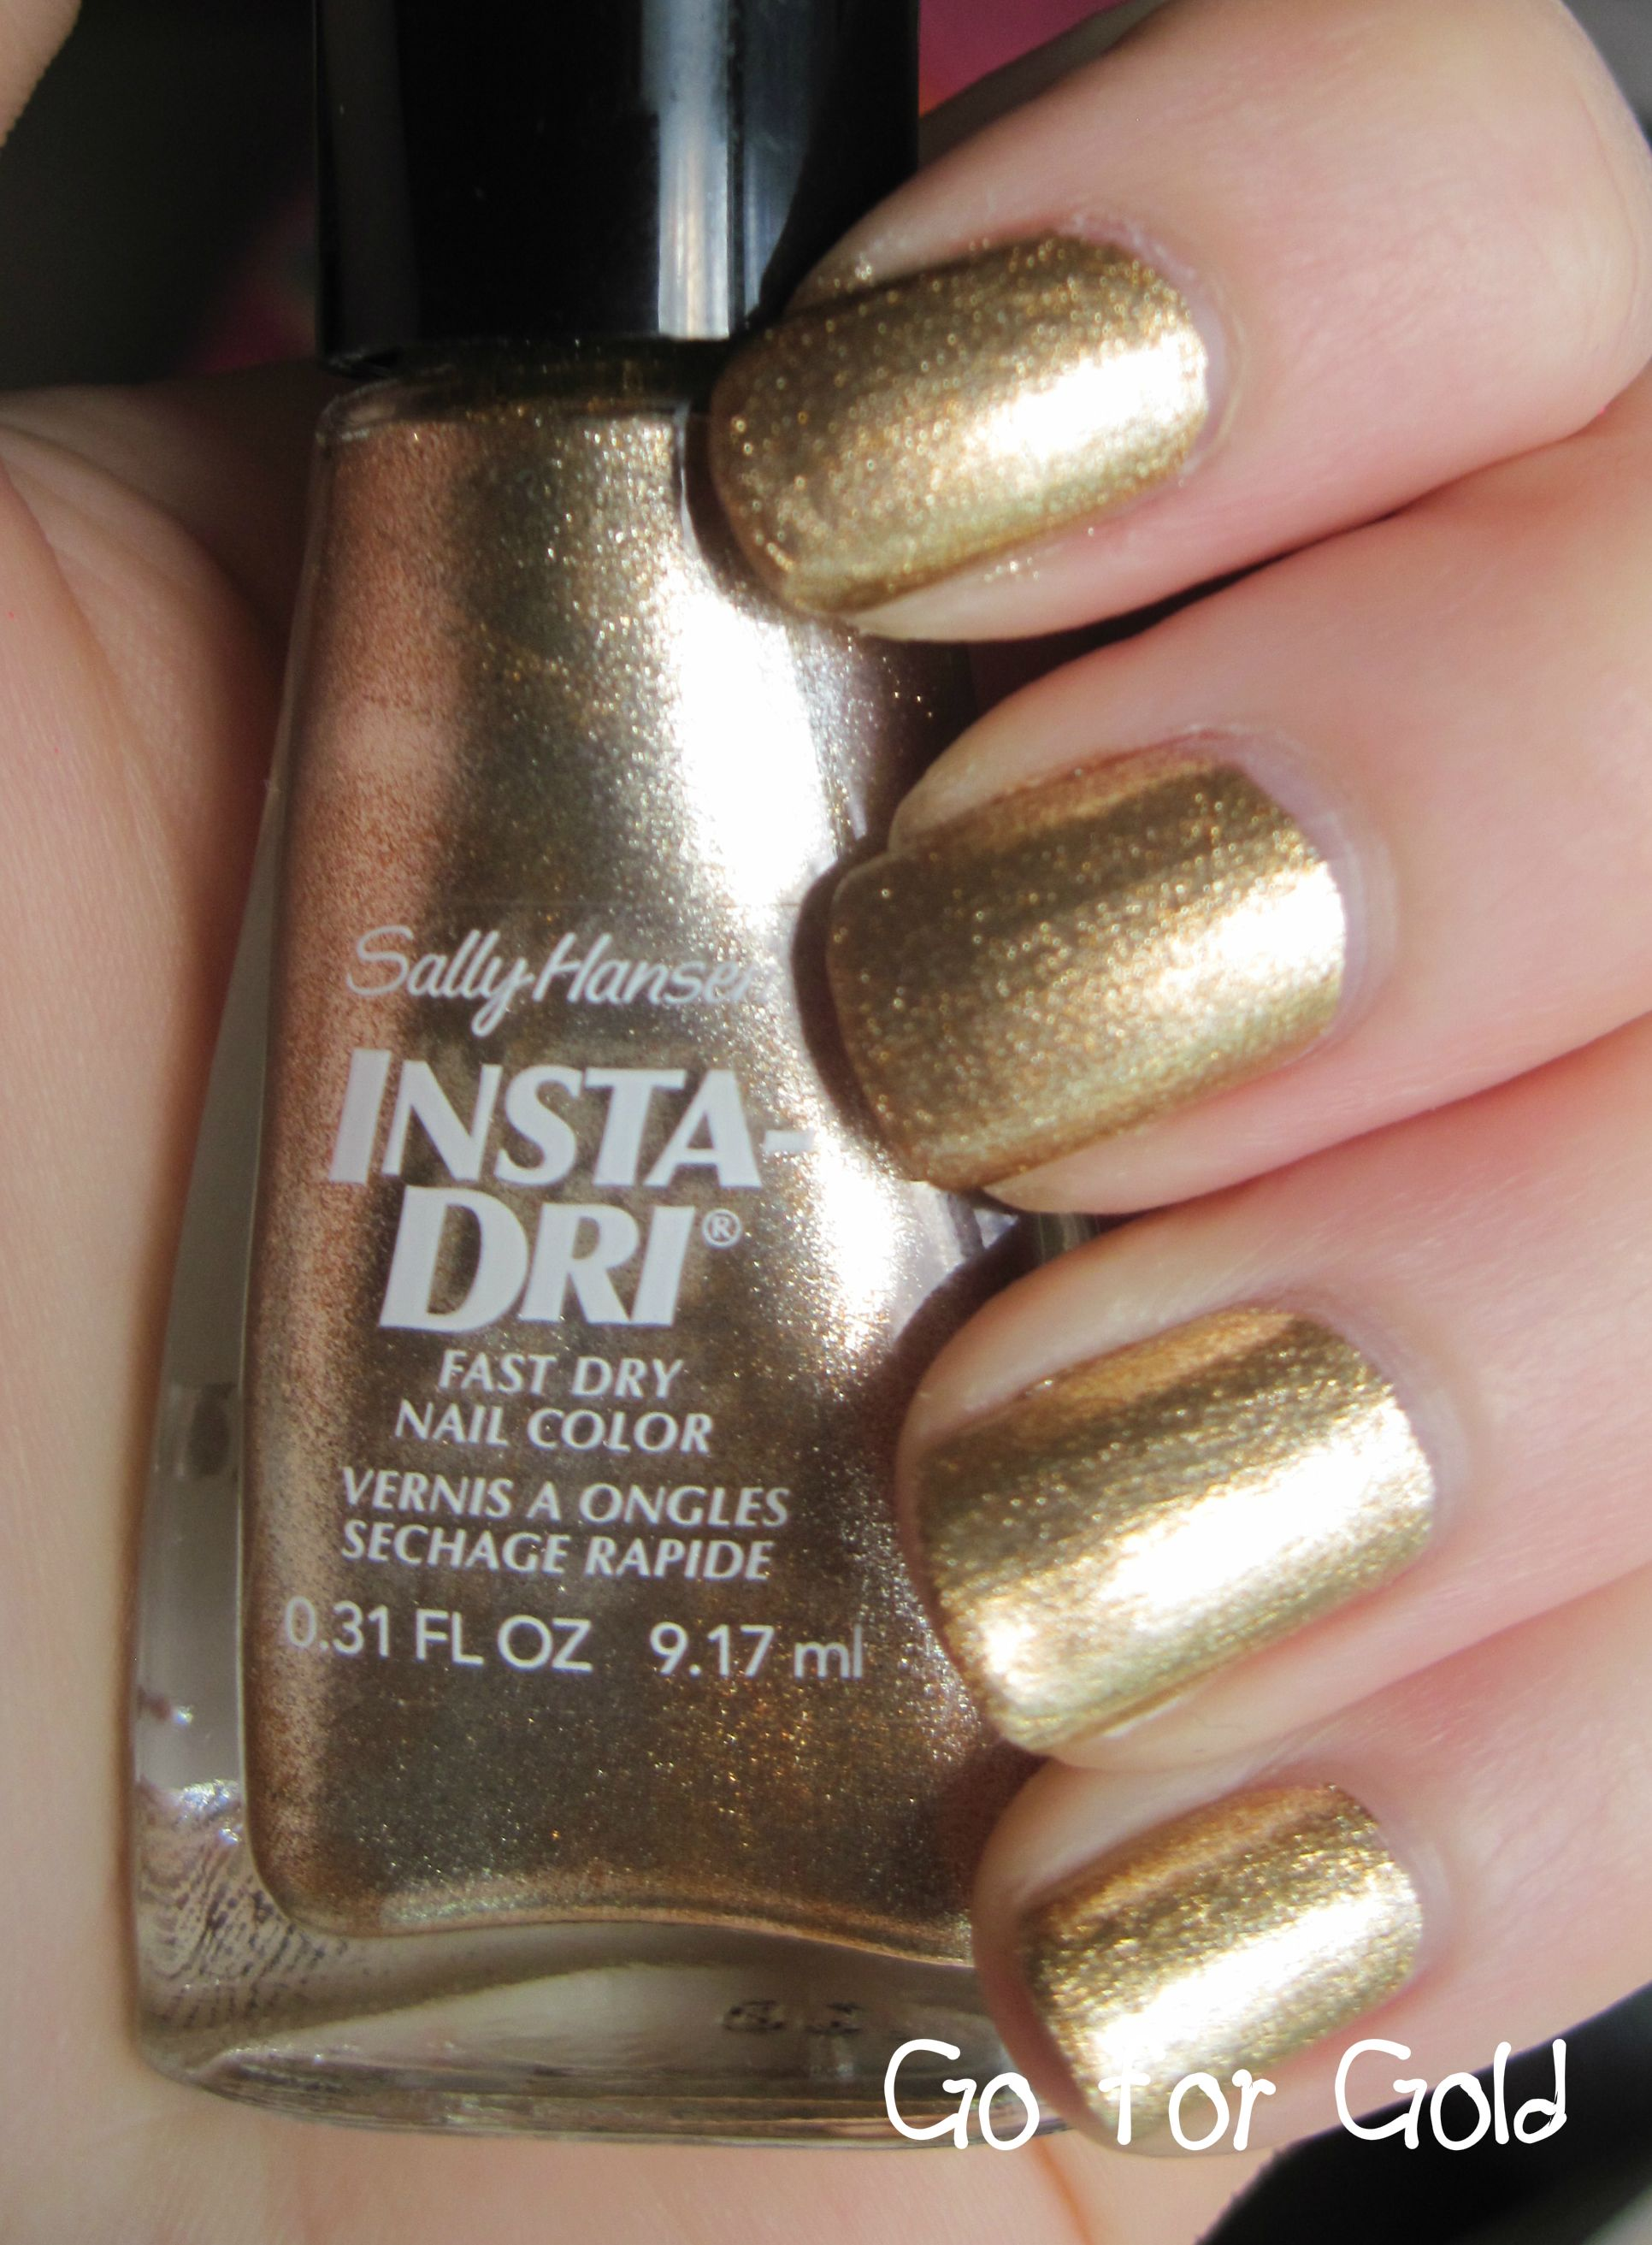 Bought This Today For My Formal Event Weekend It S Fabulous Sally Hansen Insta Gold Nail Polishgold